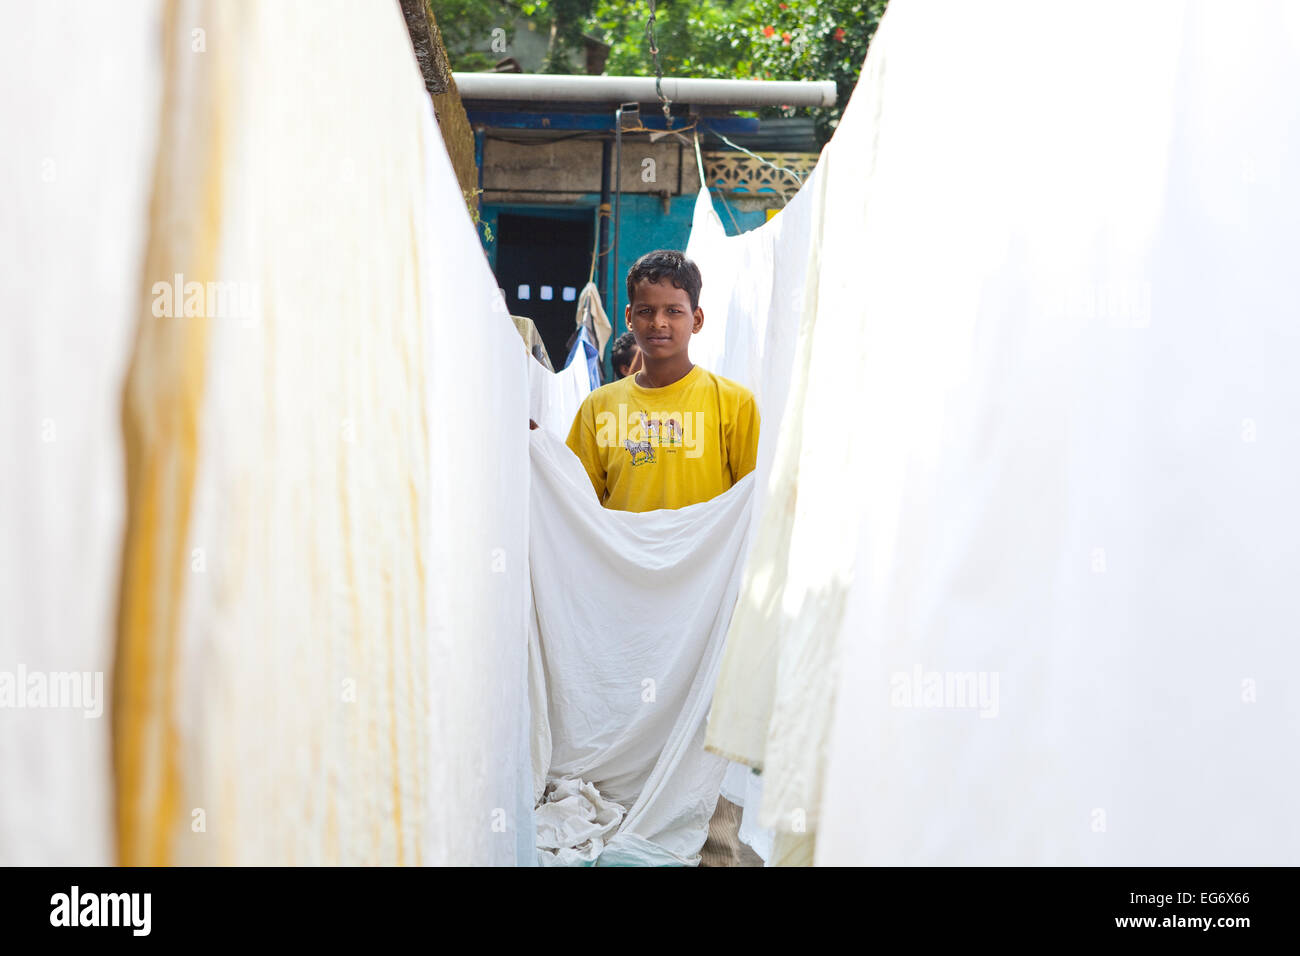 'Dhobi wallah' or Laundry boy - hanging out freshly washed sheets to dry in the Indian sun, Kumily, Southern - Stock Image